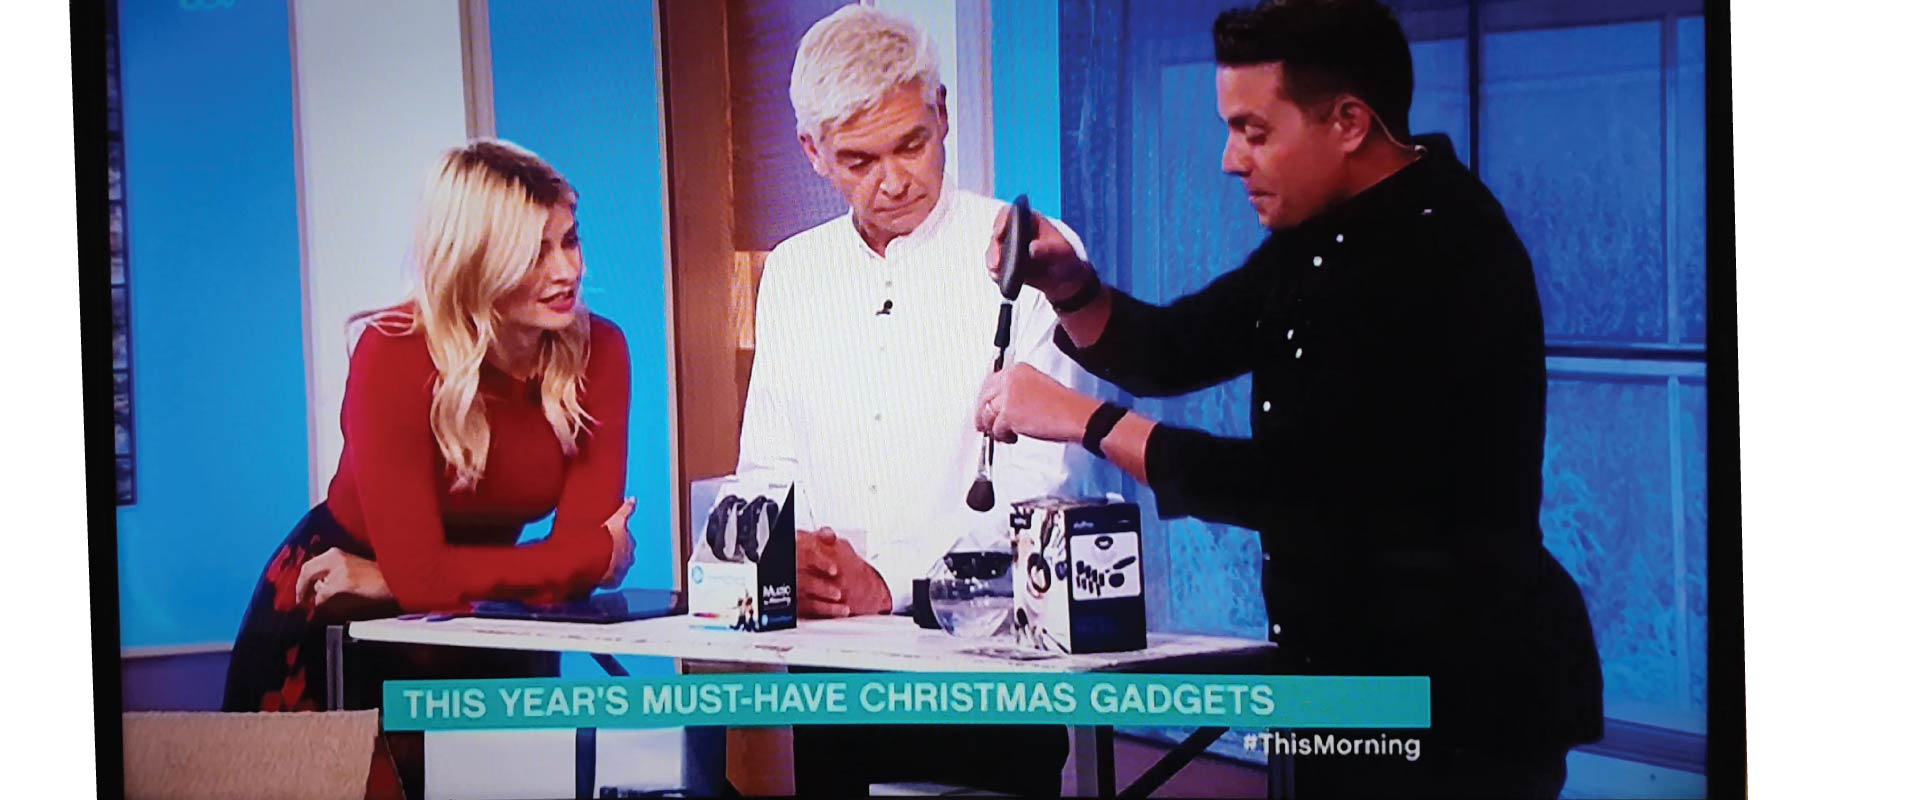 Stylpro in ITV This Morning with Holly Willoughby